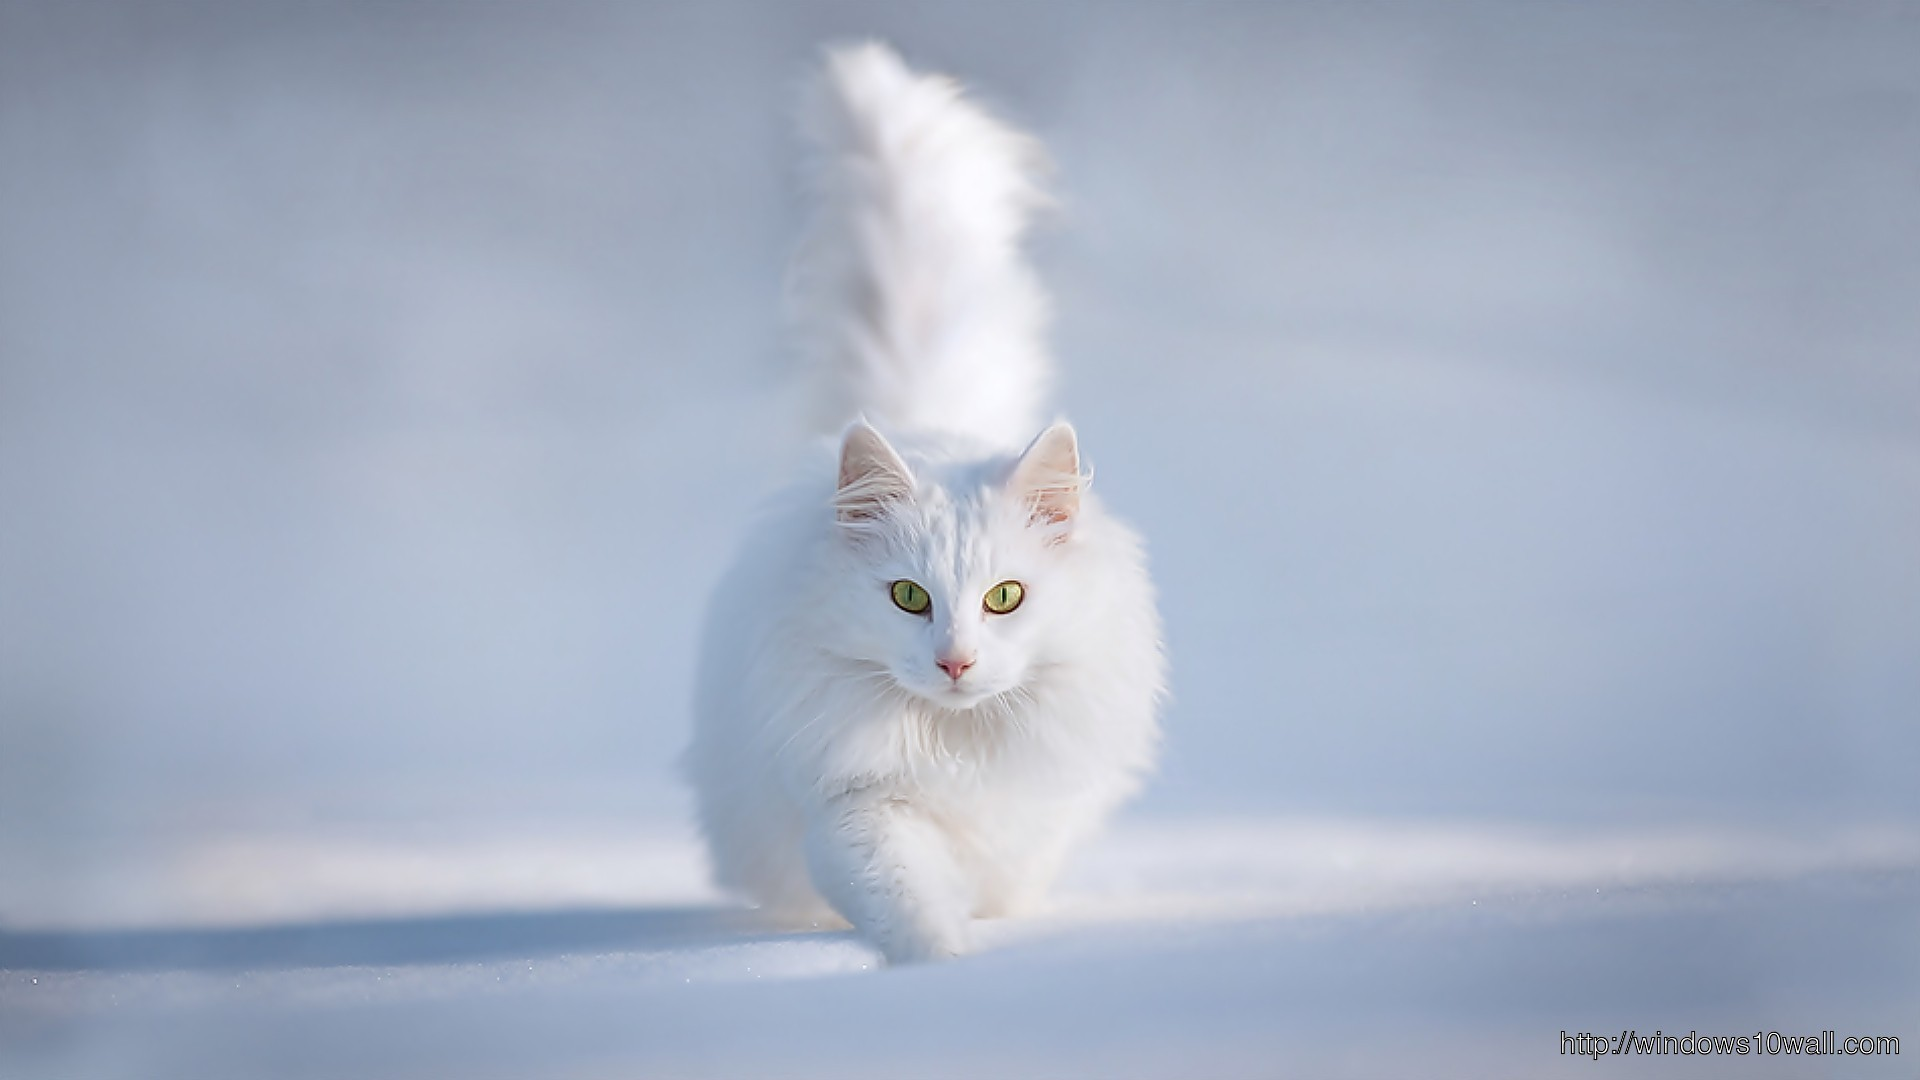 Animals Hdwallpaper Cute White Cat Hd Wallpaper Windows 10 Wallpapers